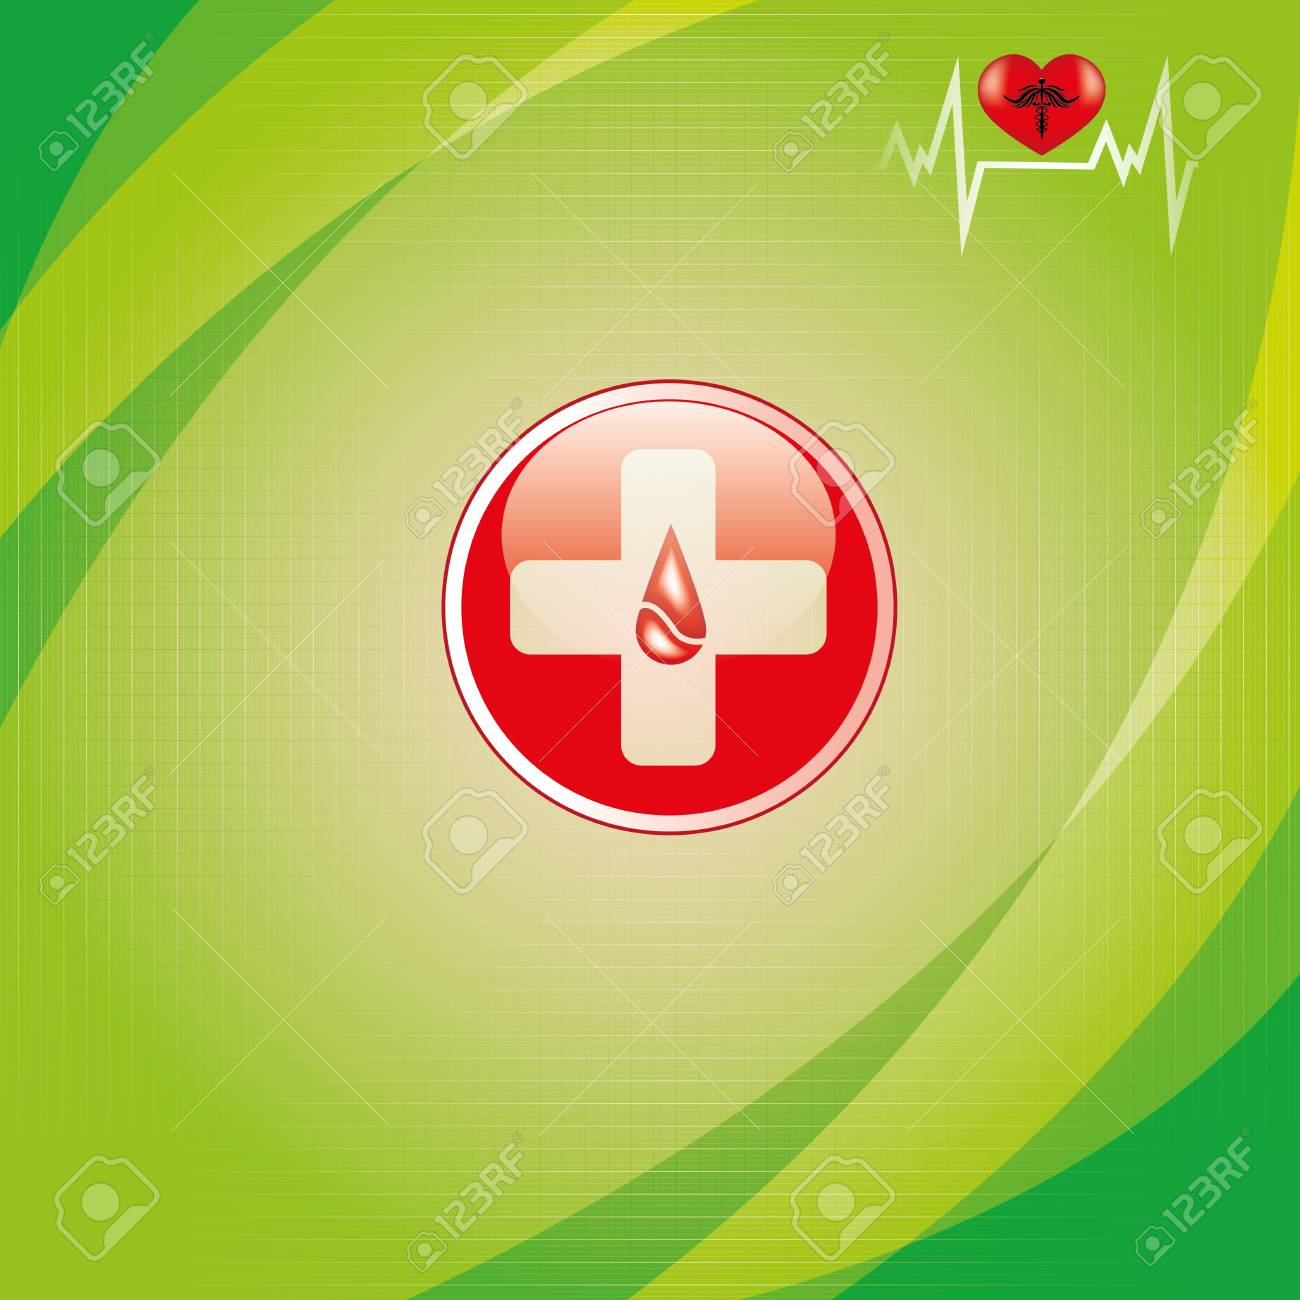 Abstract medical background Stock Vector - 14583200